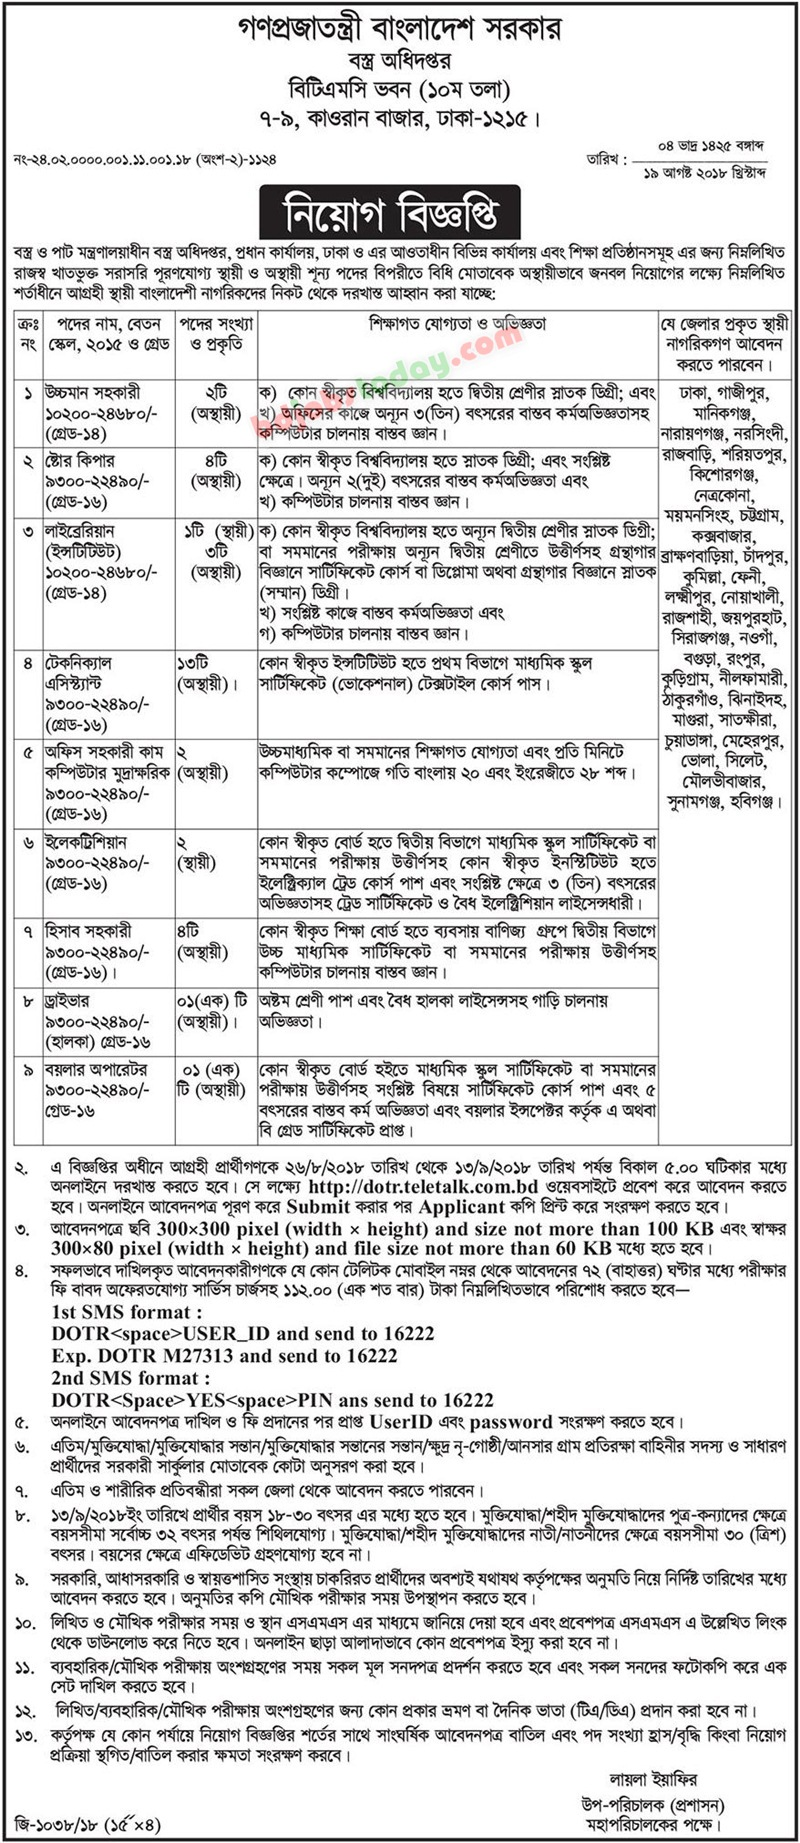 Boiler Operator Job Bangladesh : Mobile Version